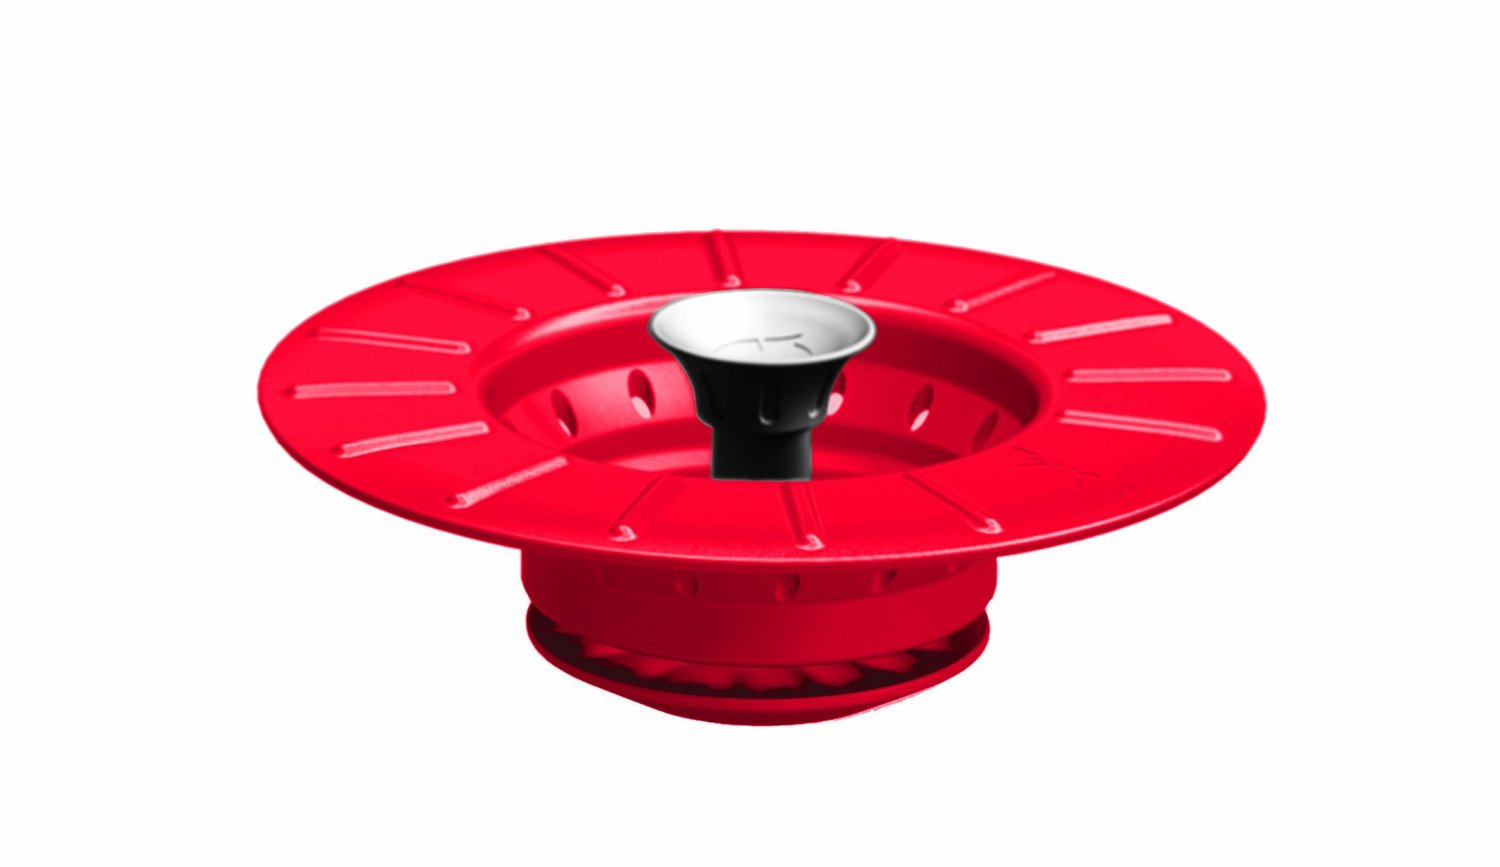 Collapsible Stopper & Strainer-Chili